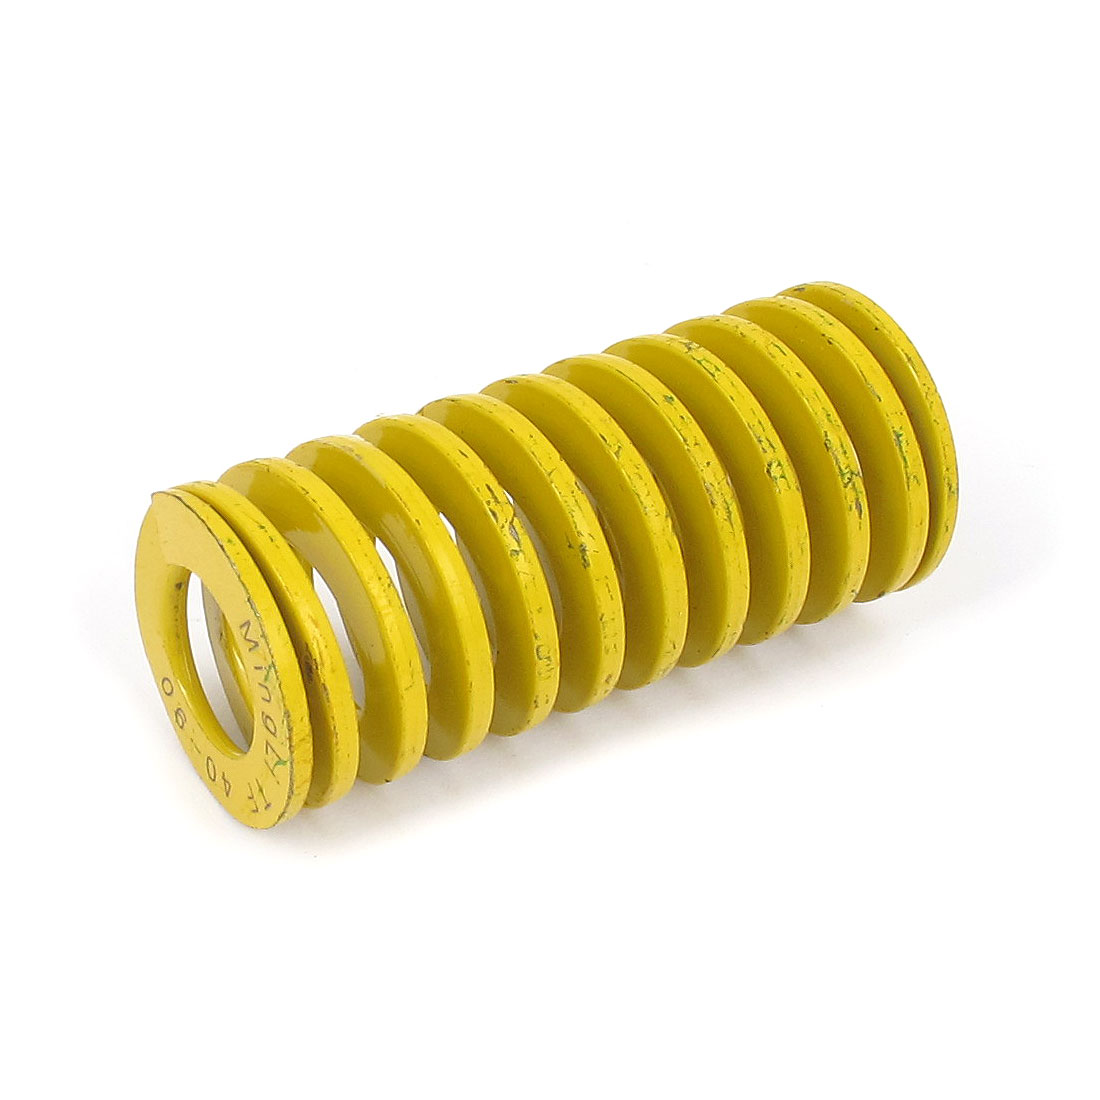 40mm OD 90mm Long Lightest Load Spiral Stamping Compression Die Spring Yellow